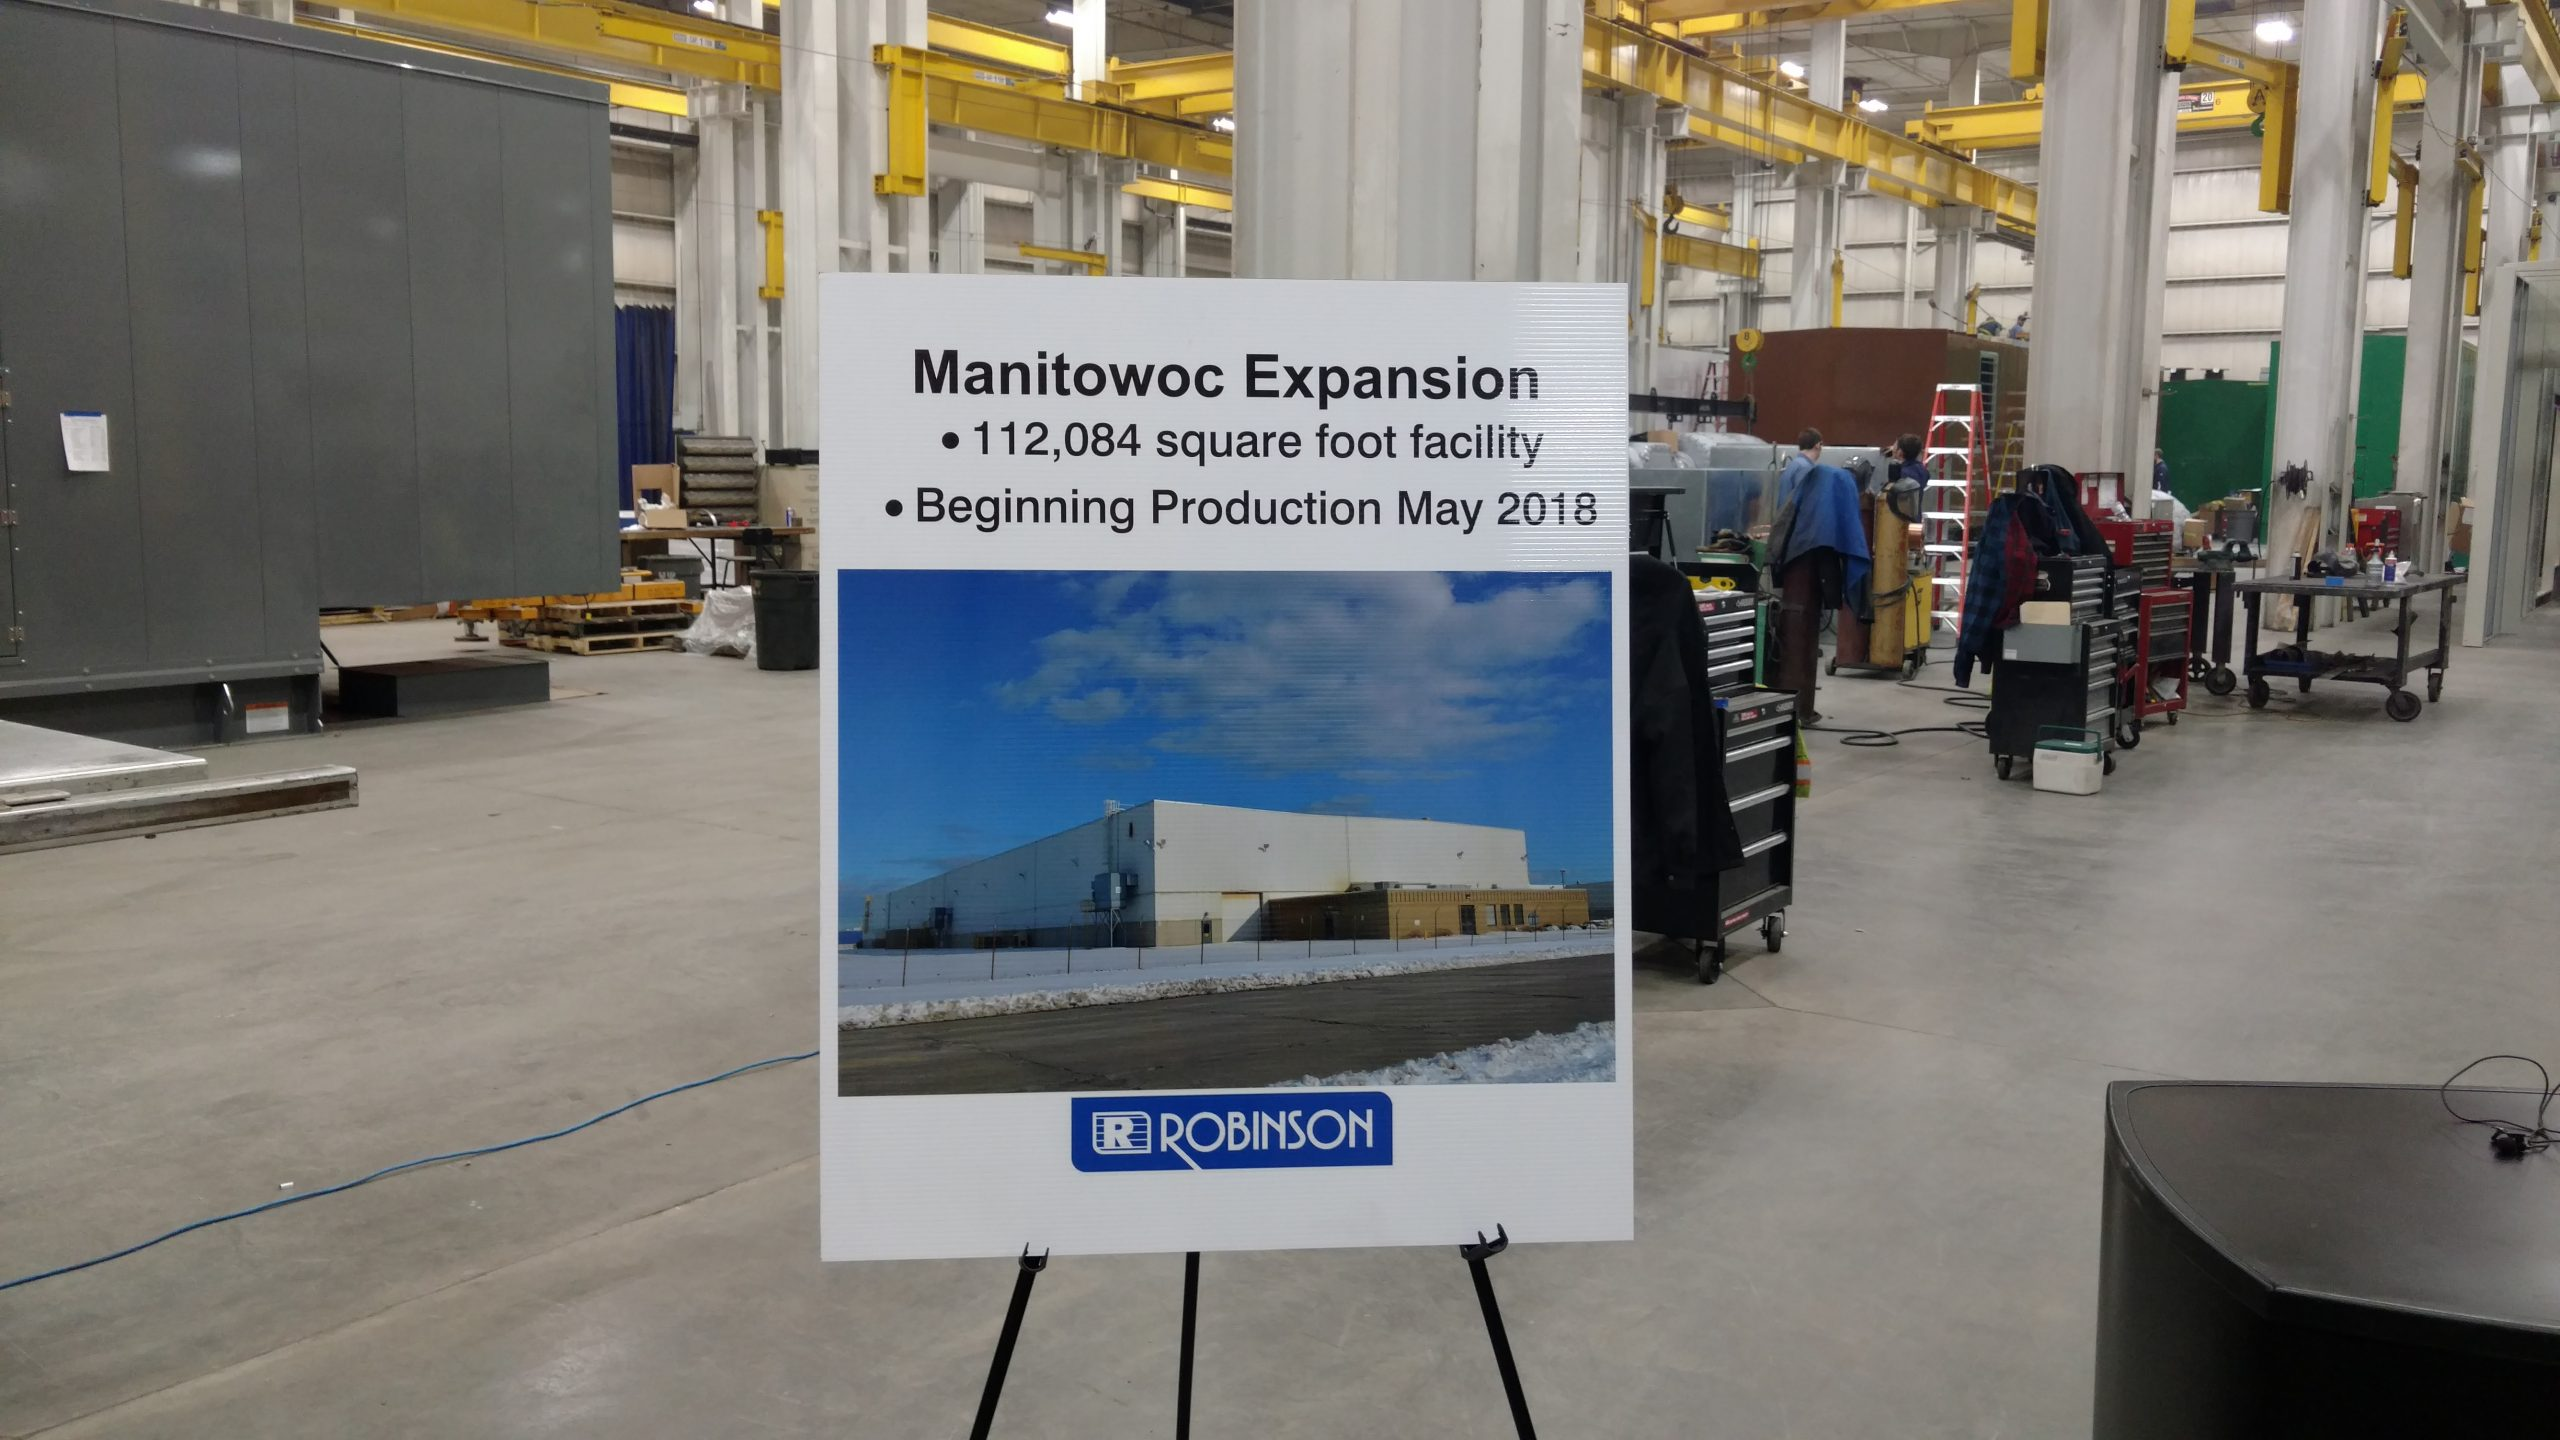 Robinson Metal Expansion Officially Announced Today